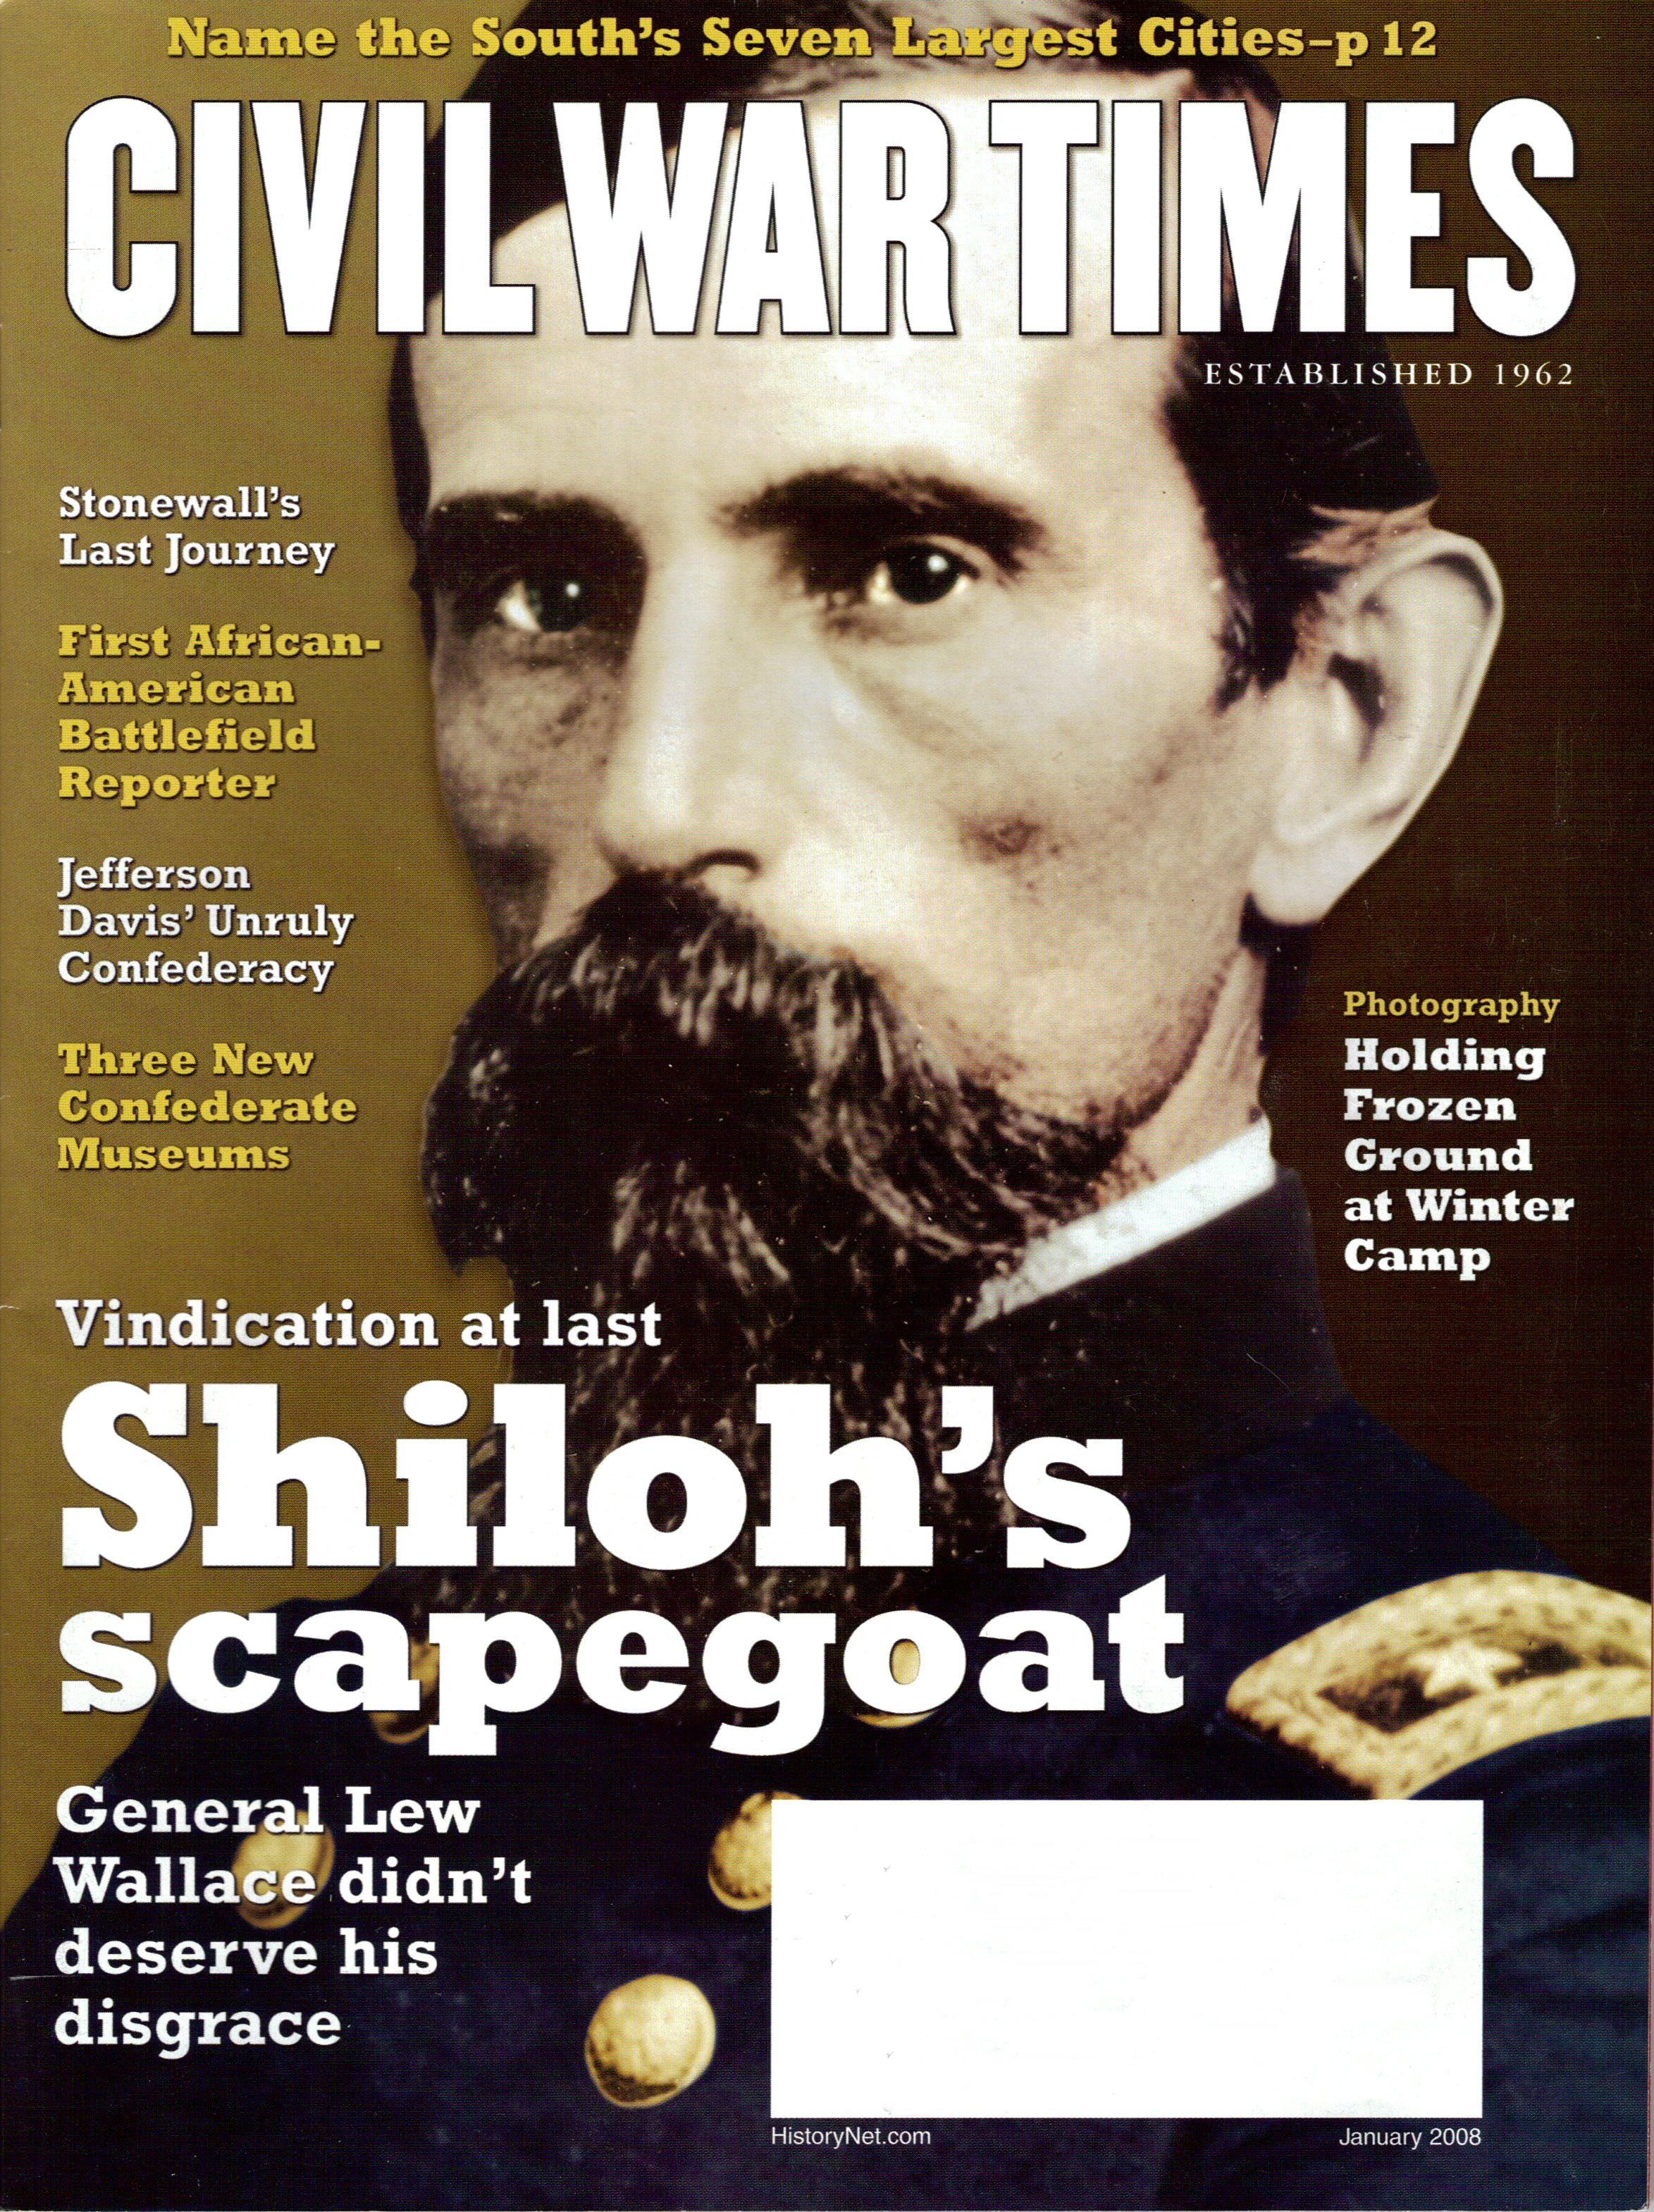 Civil War Times, Volume 46, Number 10 (January 2008)